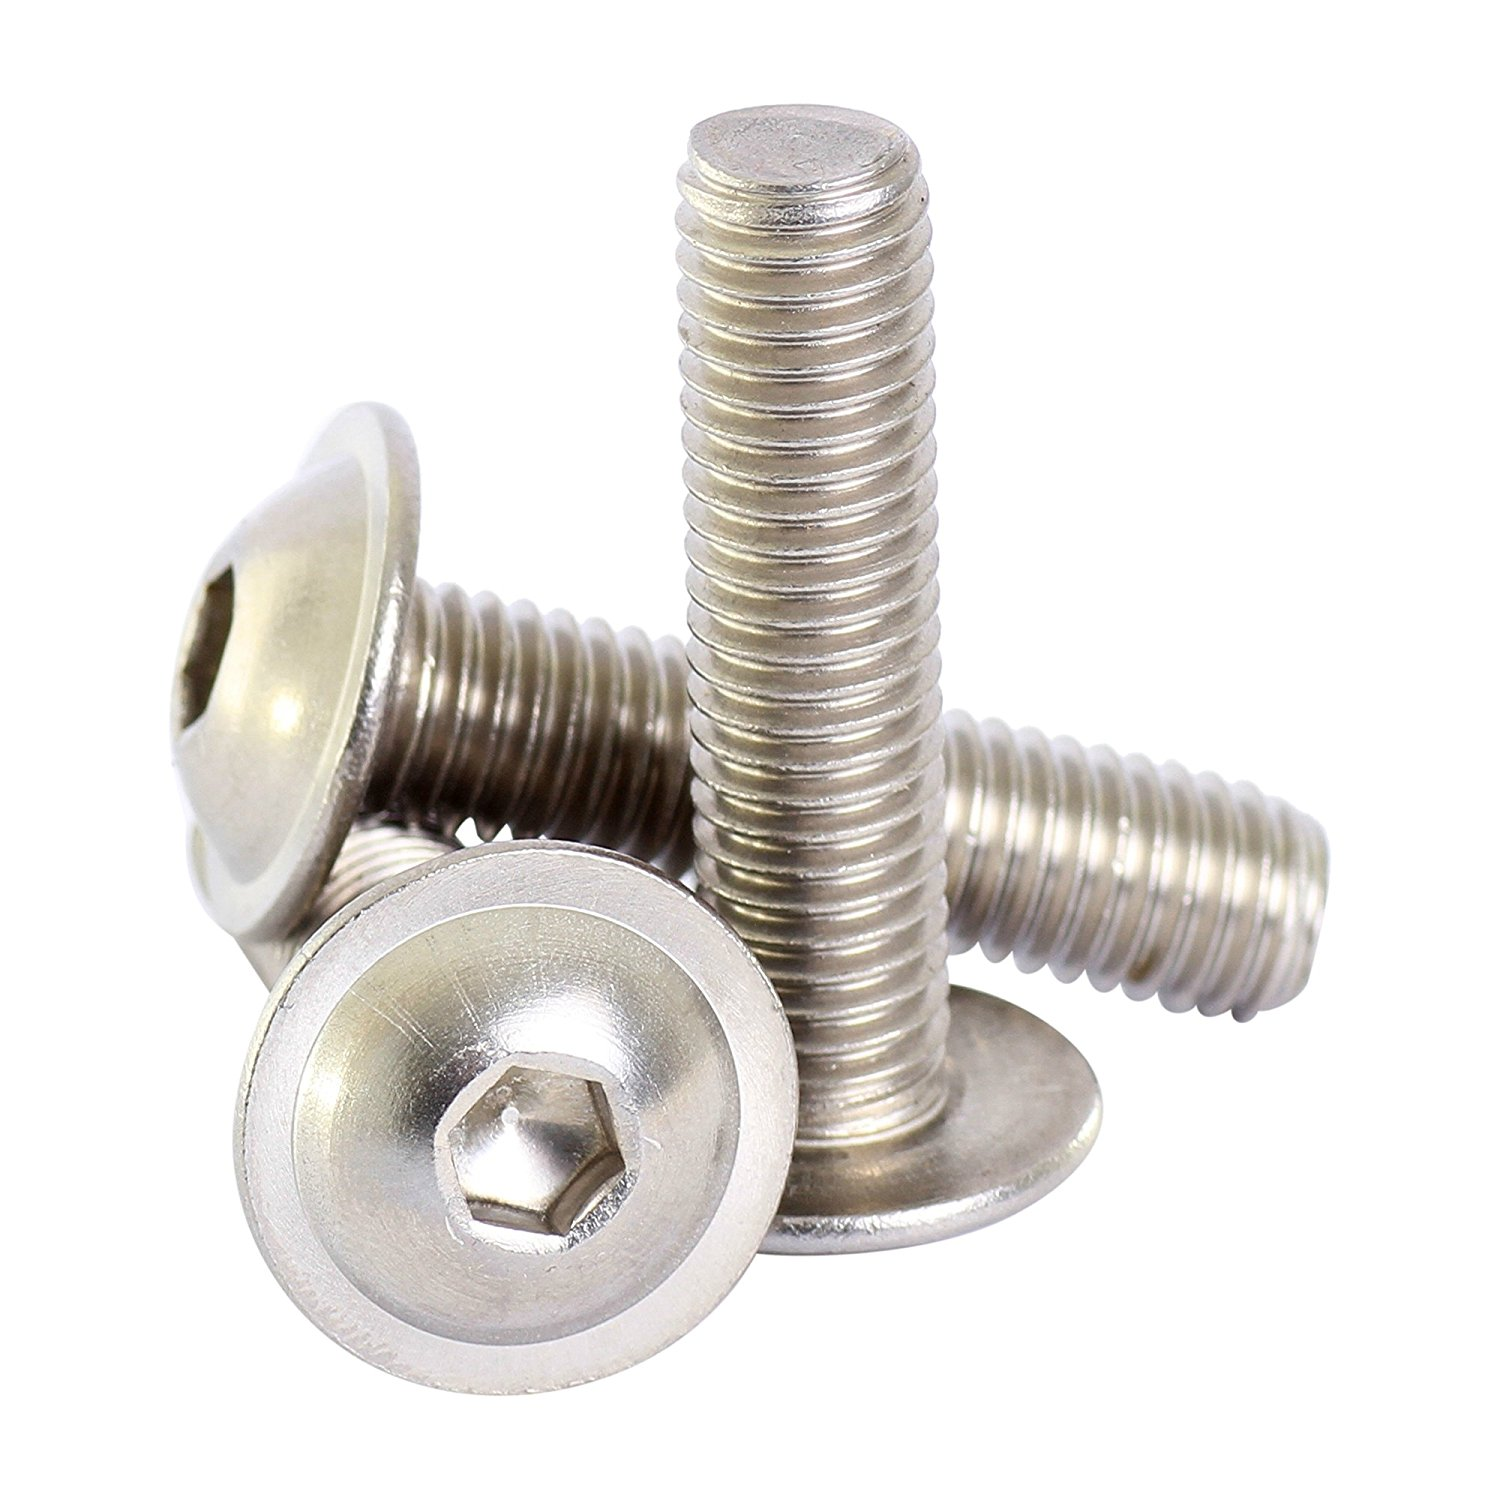 and Economy Slide-in T-Nut Bolt Assembly: 5//16-18 x .687 Flanged Button Head Socket Cap Screw FBHSCS 80//20 Inc 15 Series 12 Pack 3320